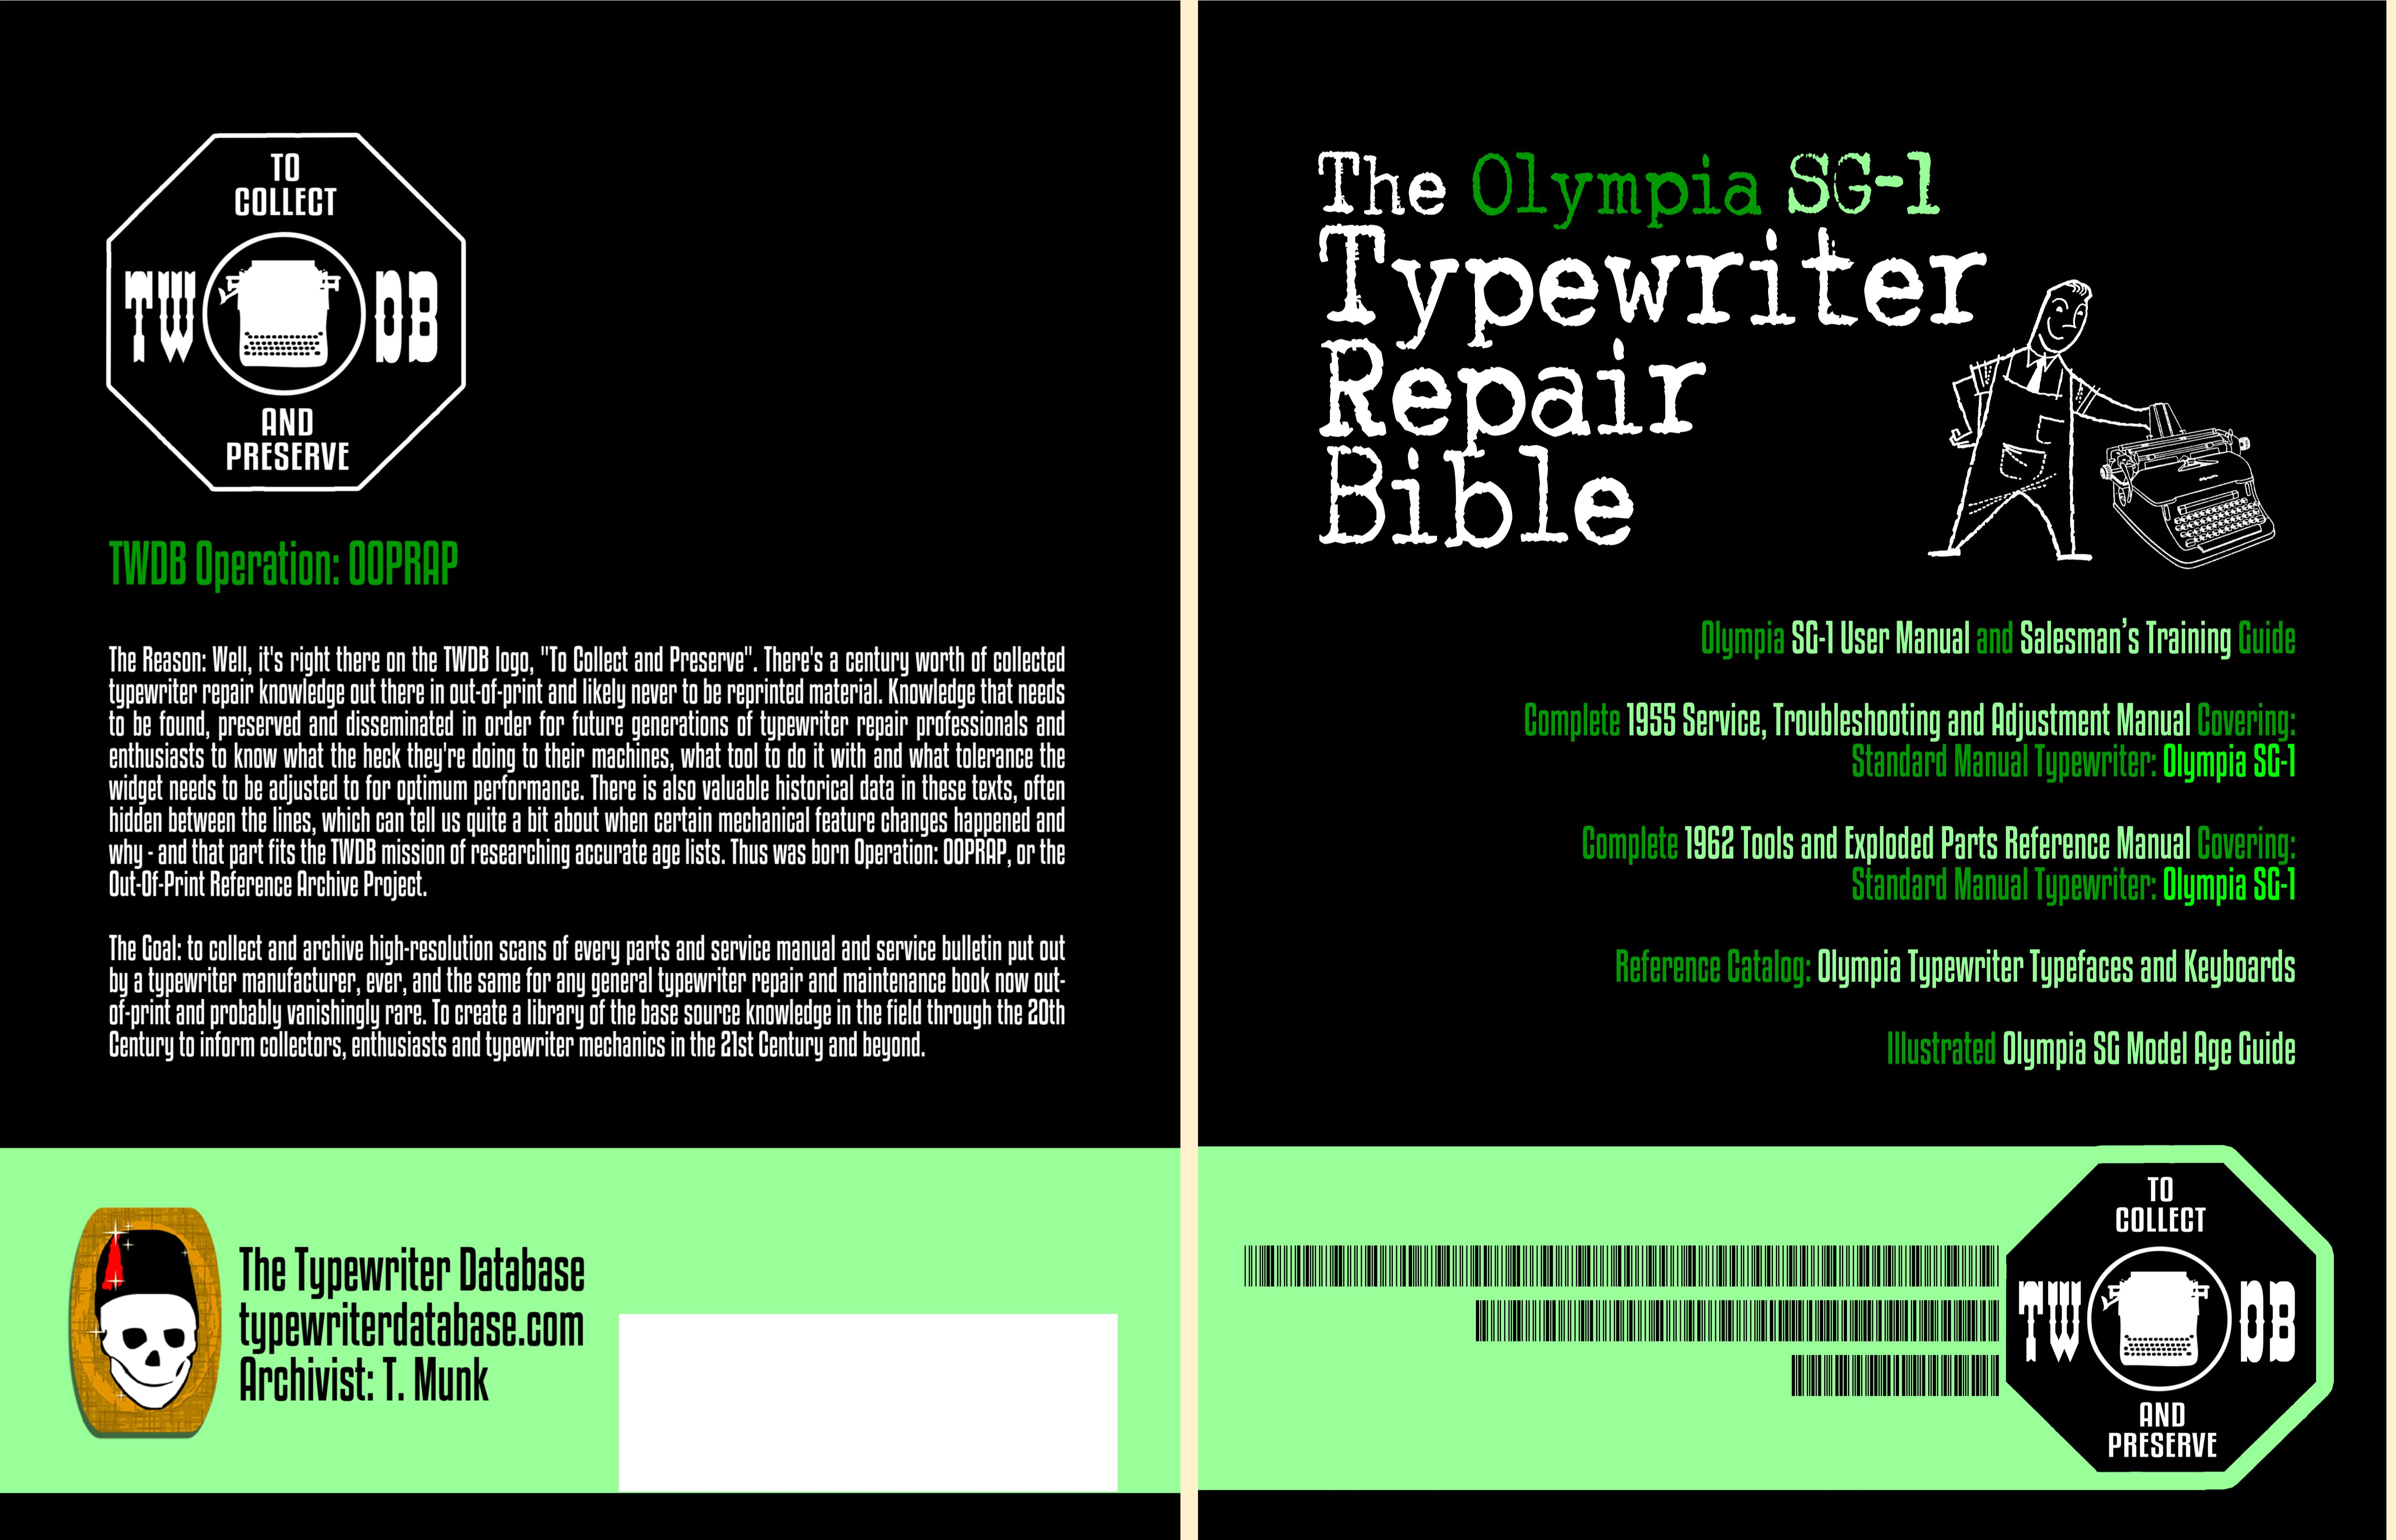 The Olympia SG1 Typewriter Repair Bible cover image